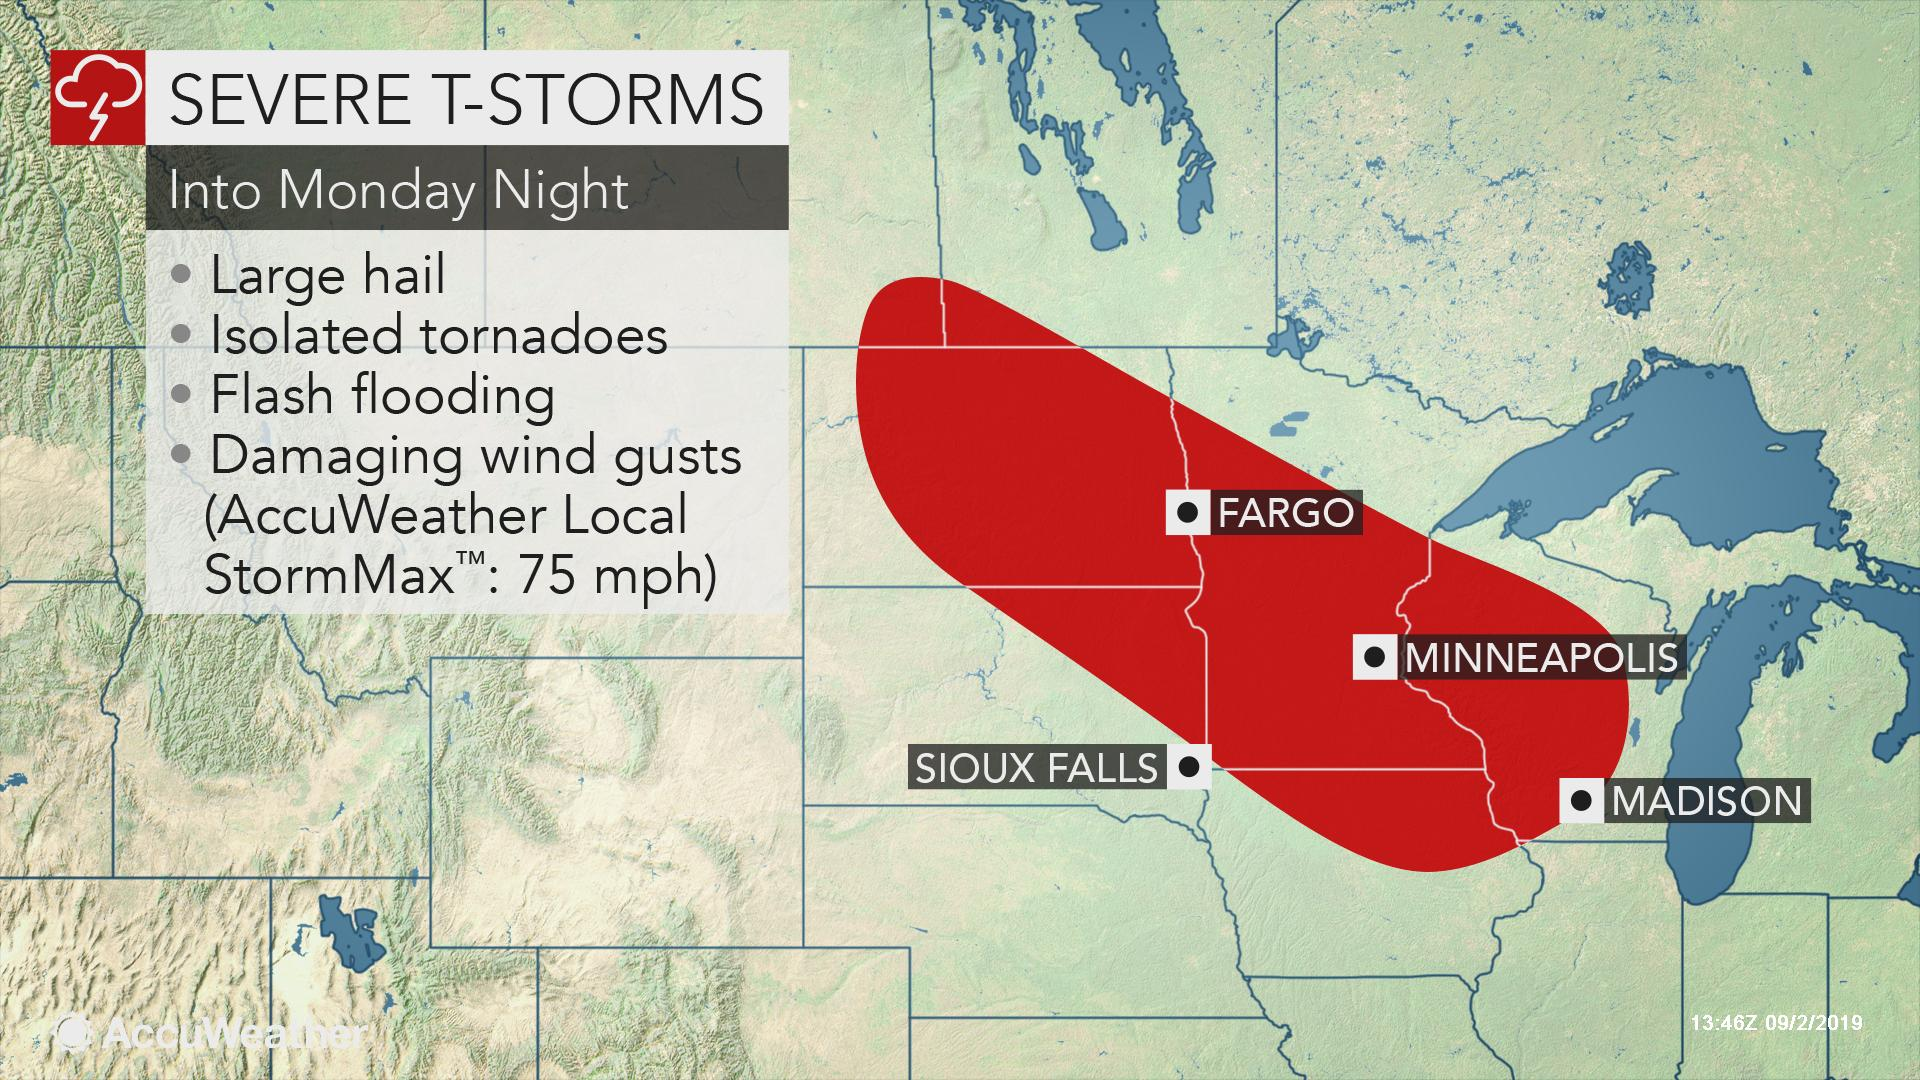 Severe storms to jolt portions of Midwest into Tuesday night